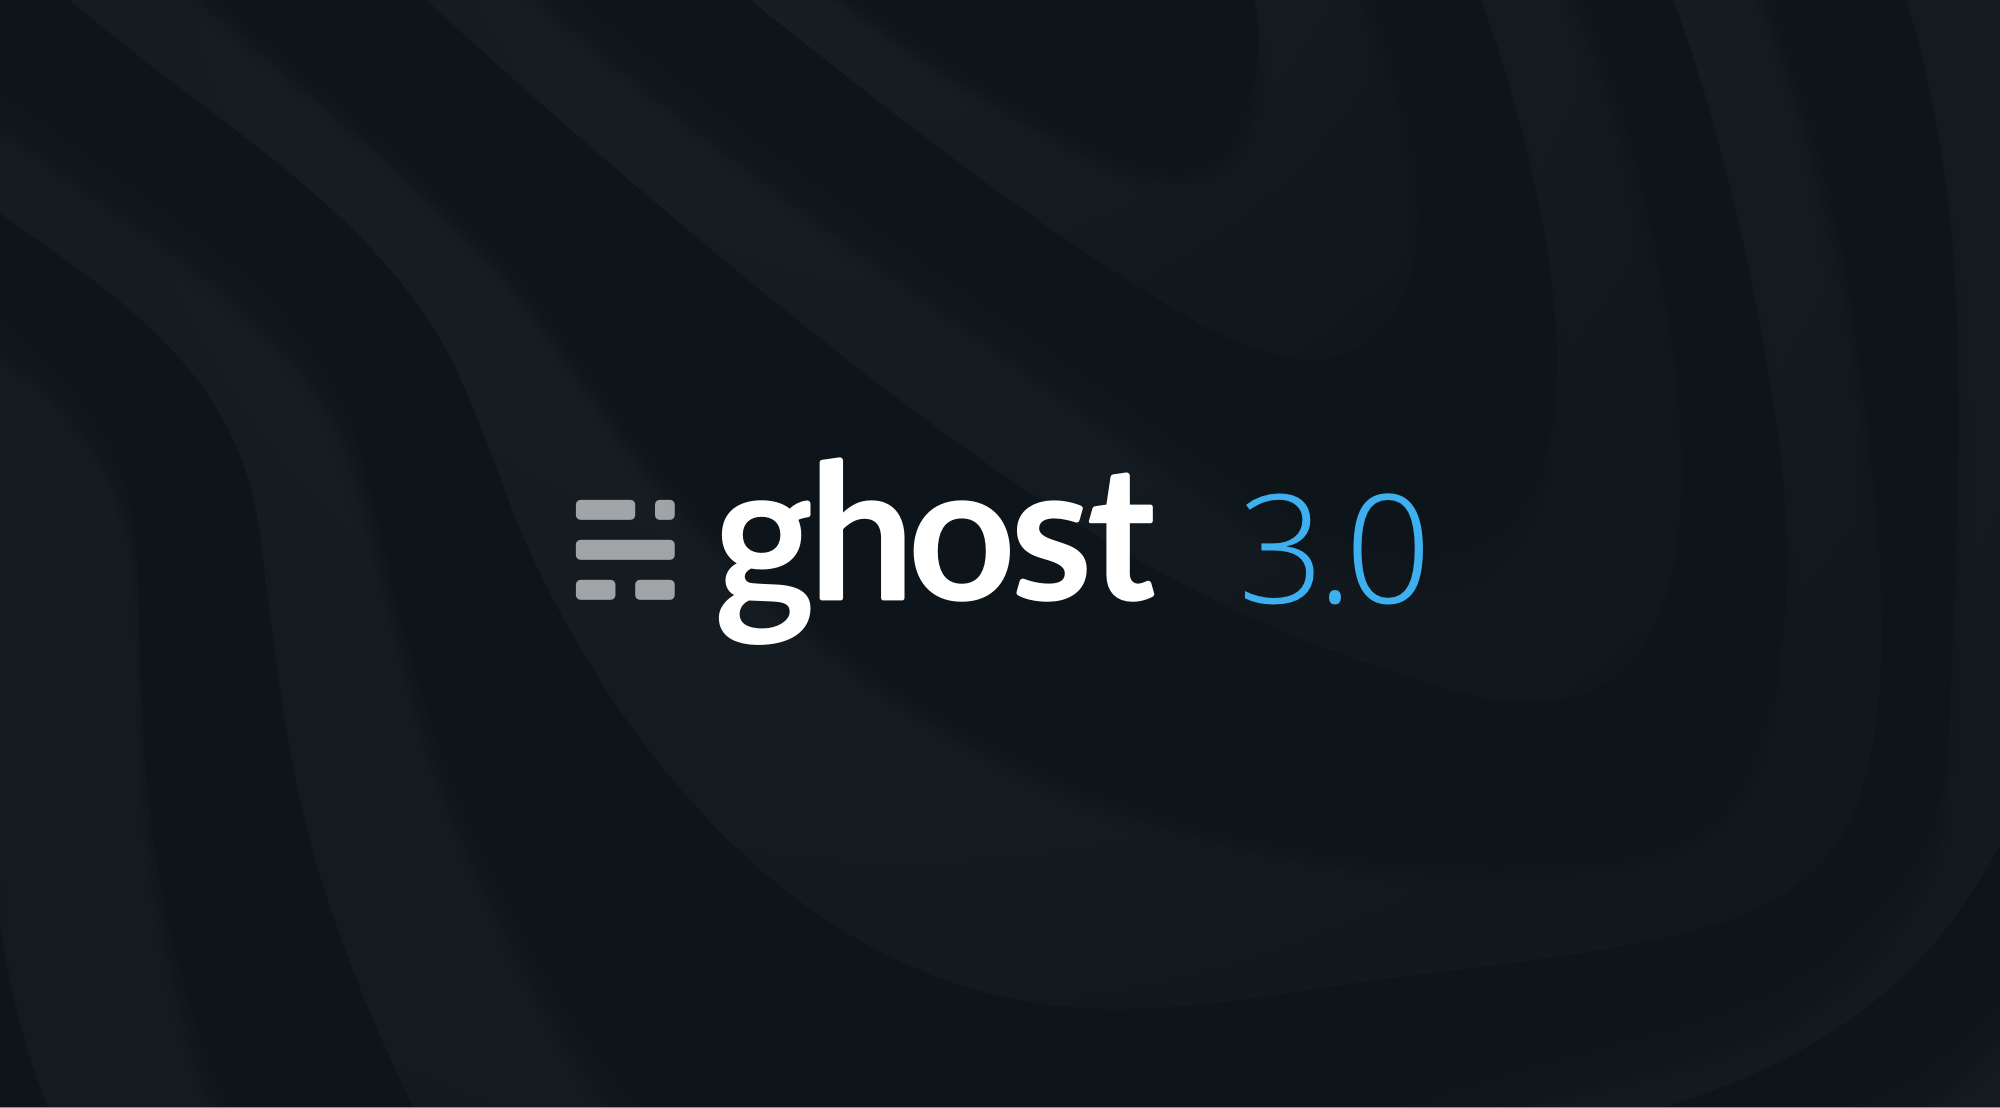 ghost.org